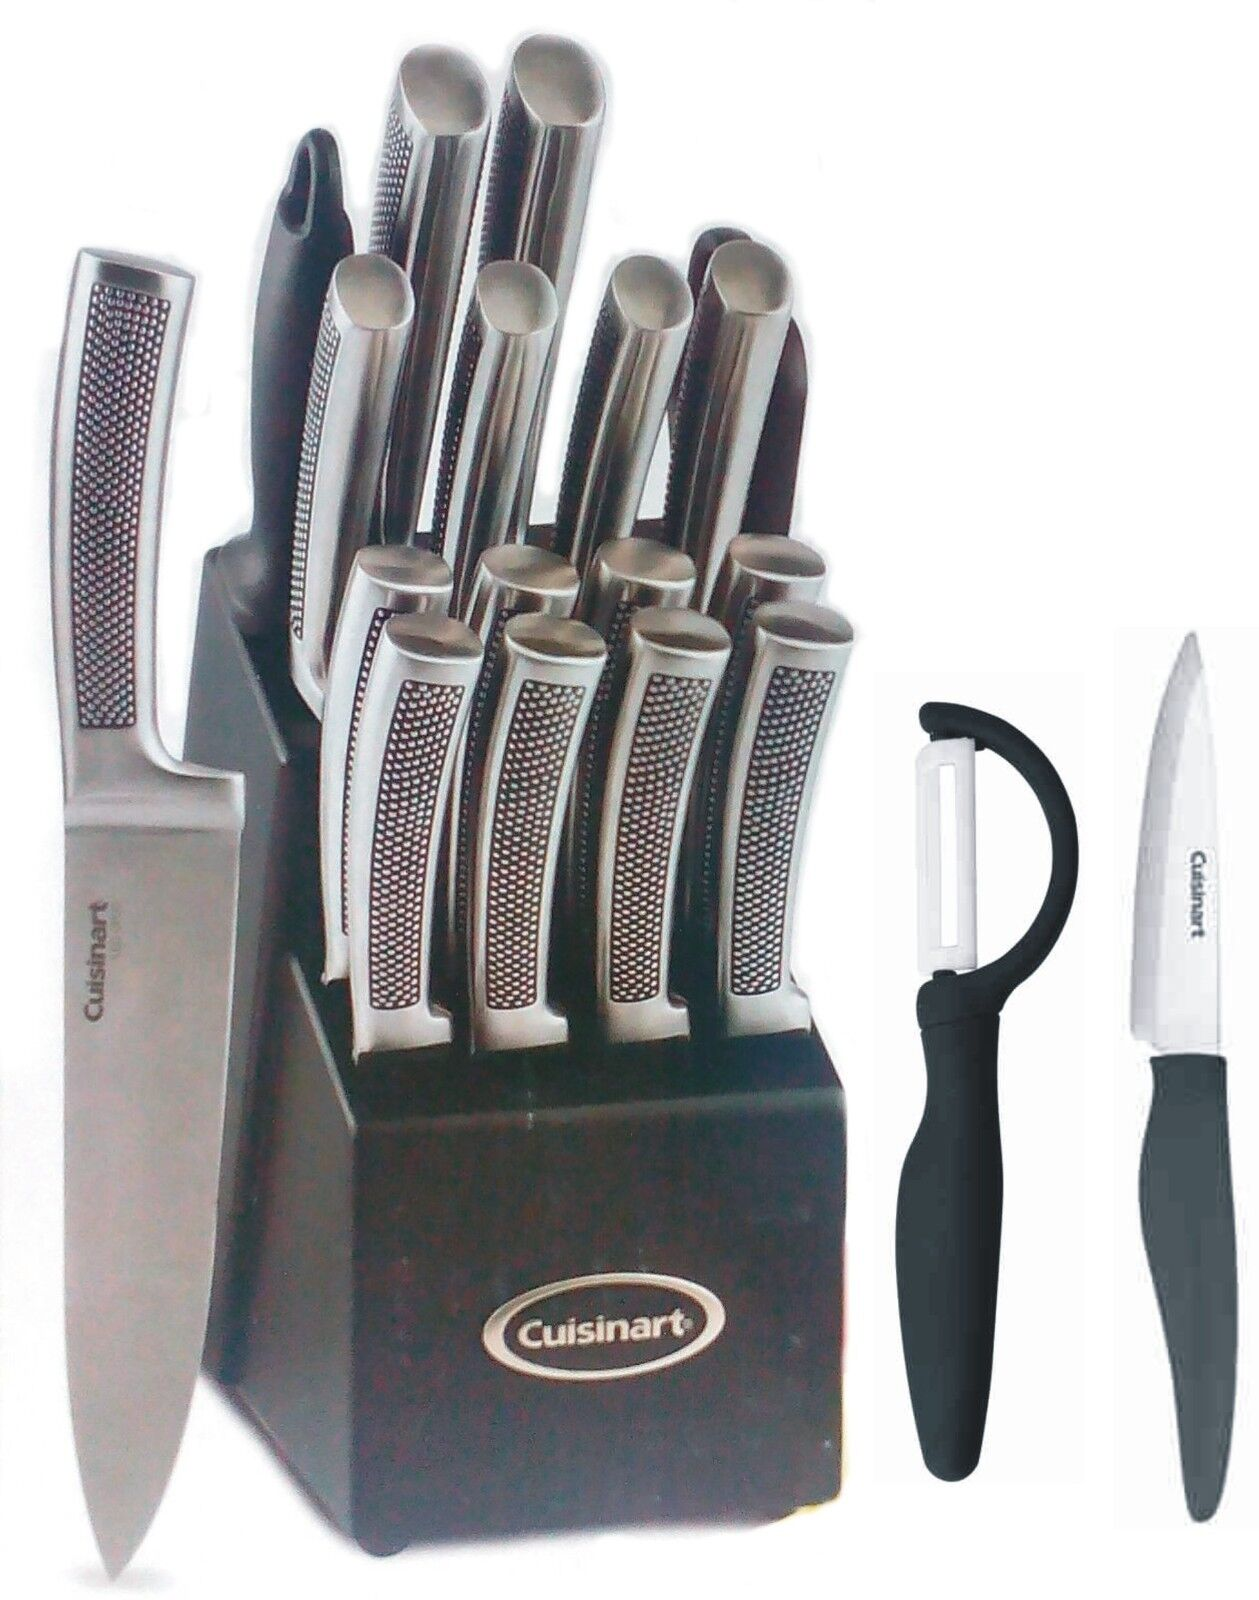 Cuisinart  21PC Stainless Forged Block Set Embossed Ceramic knife paypal CNY17